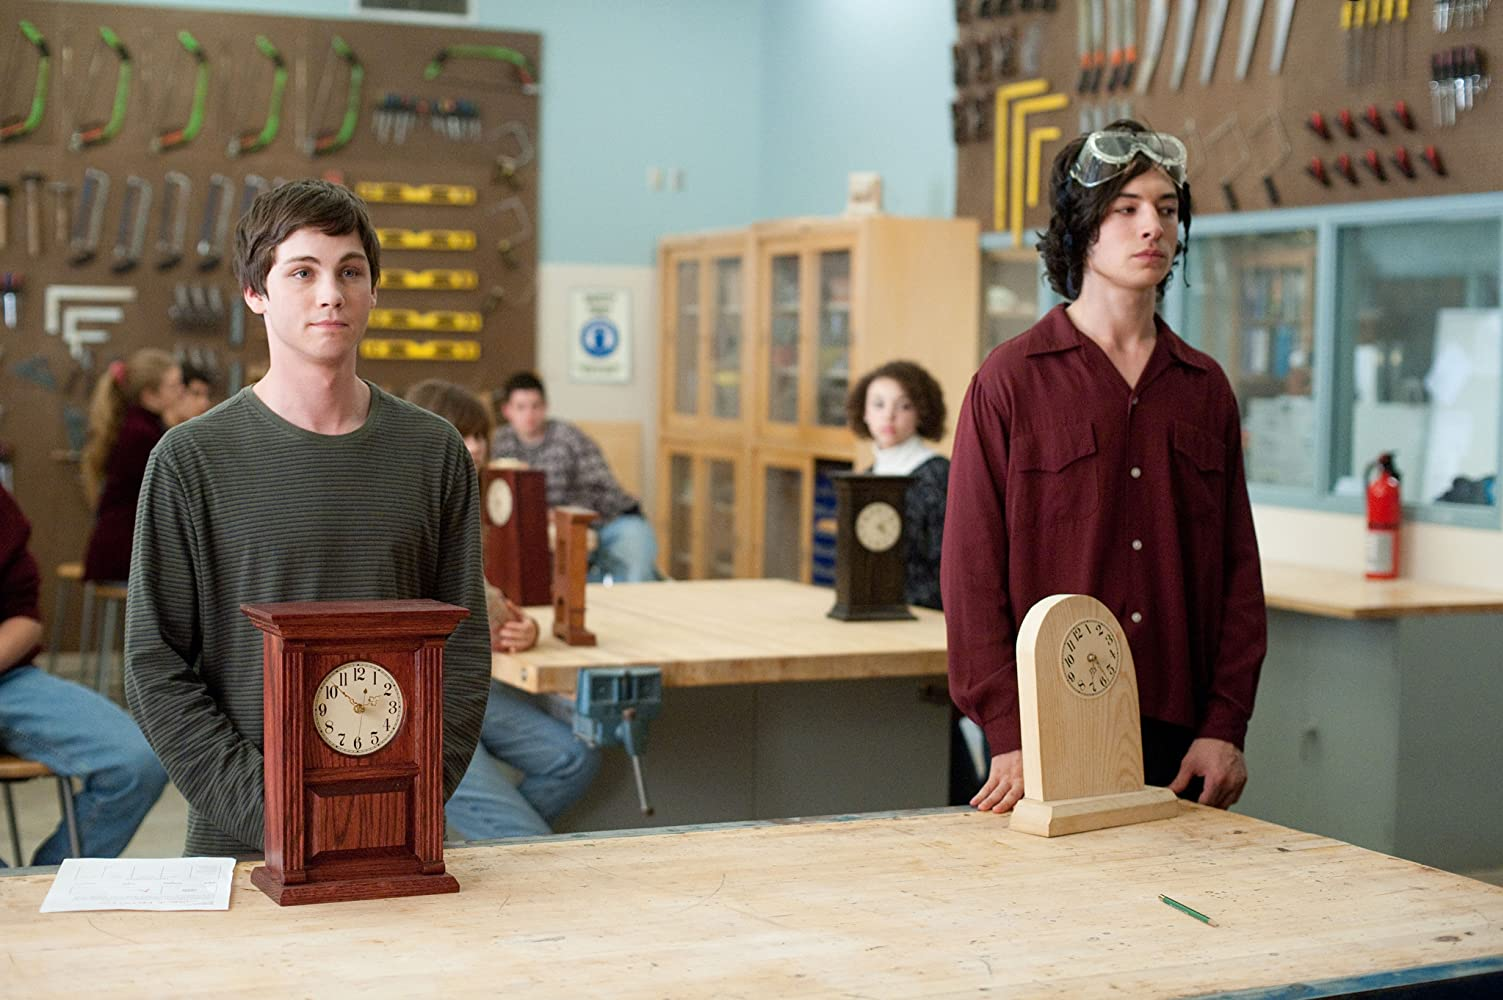 Logan Lerman and Ezra Miller in The Perks of Being a Wallflower (2012)